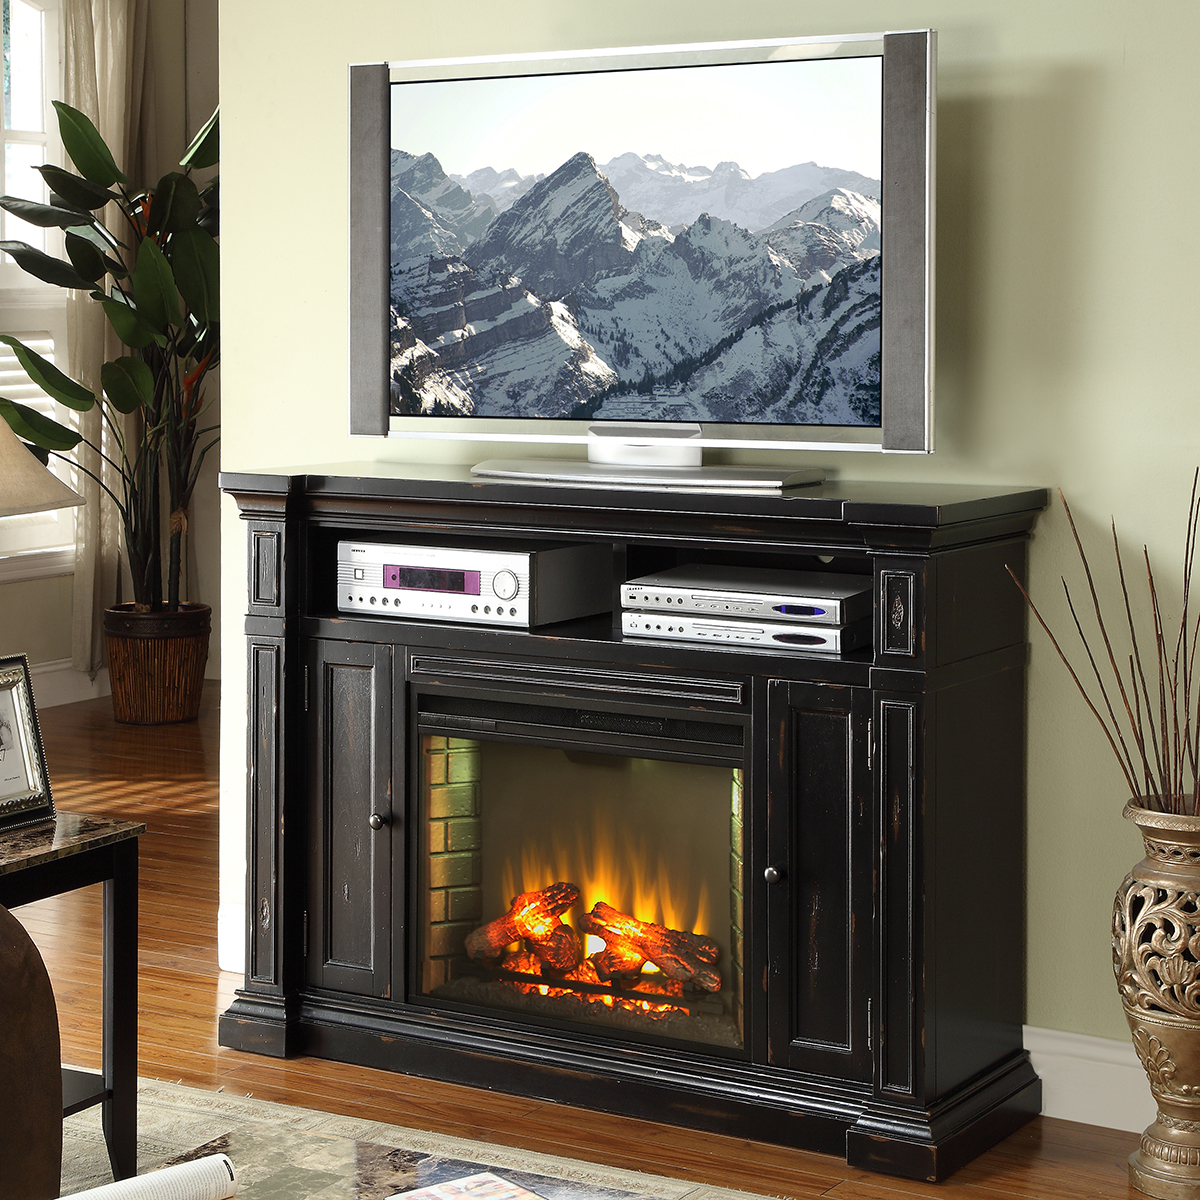 "Bobs Fireplace Beautiful Manchester 58"" Fireplace Media Center Tv Stand Mantel In"